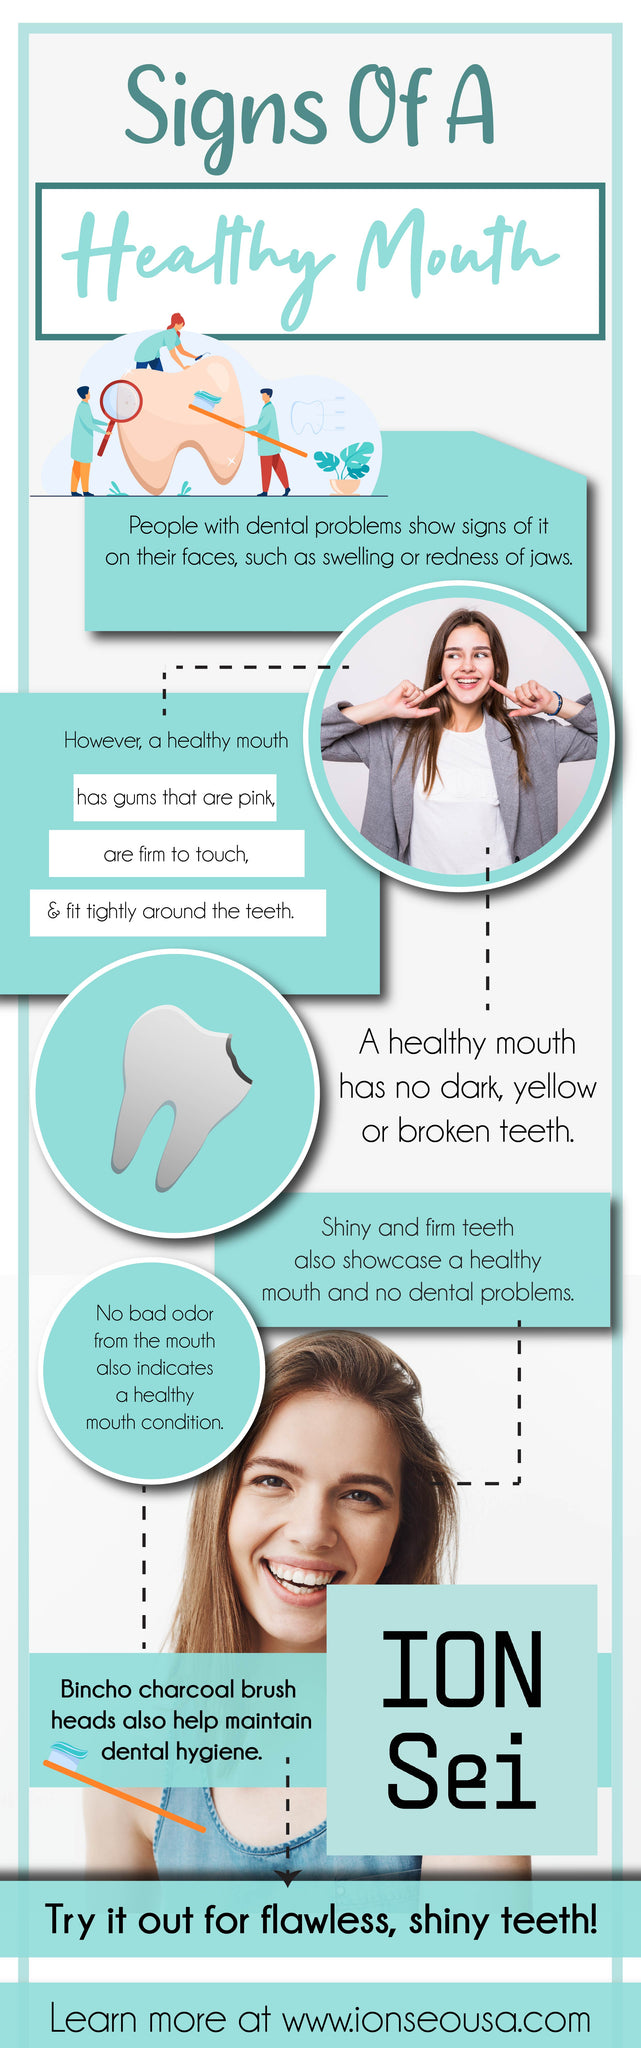 Signs of a healthy mouth